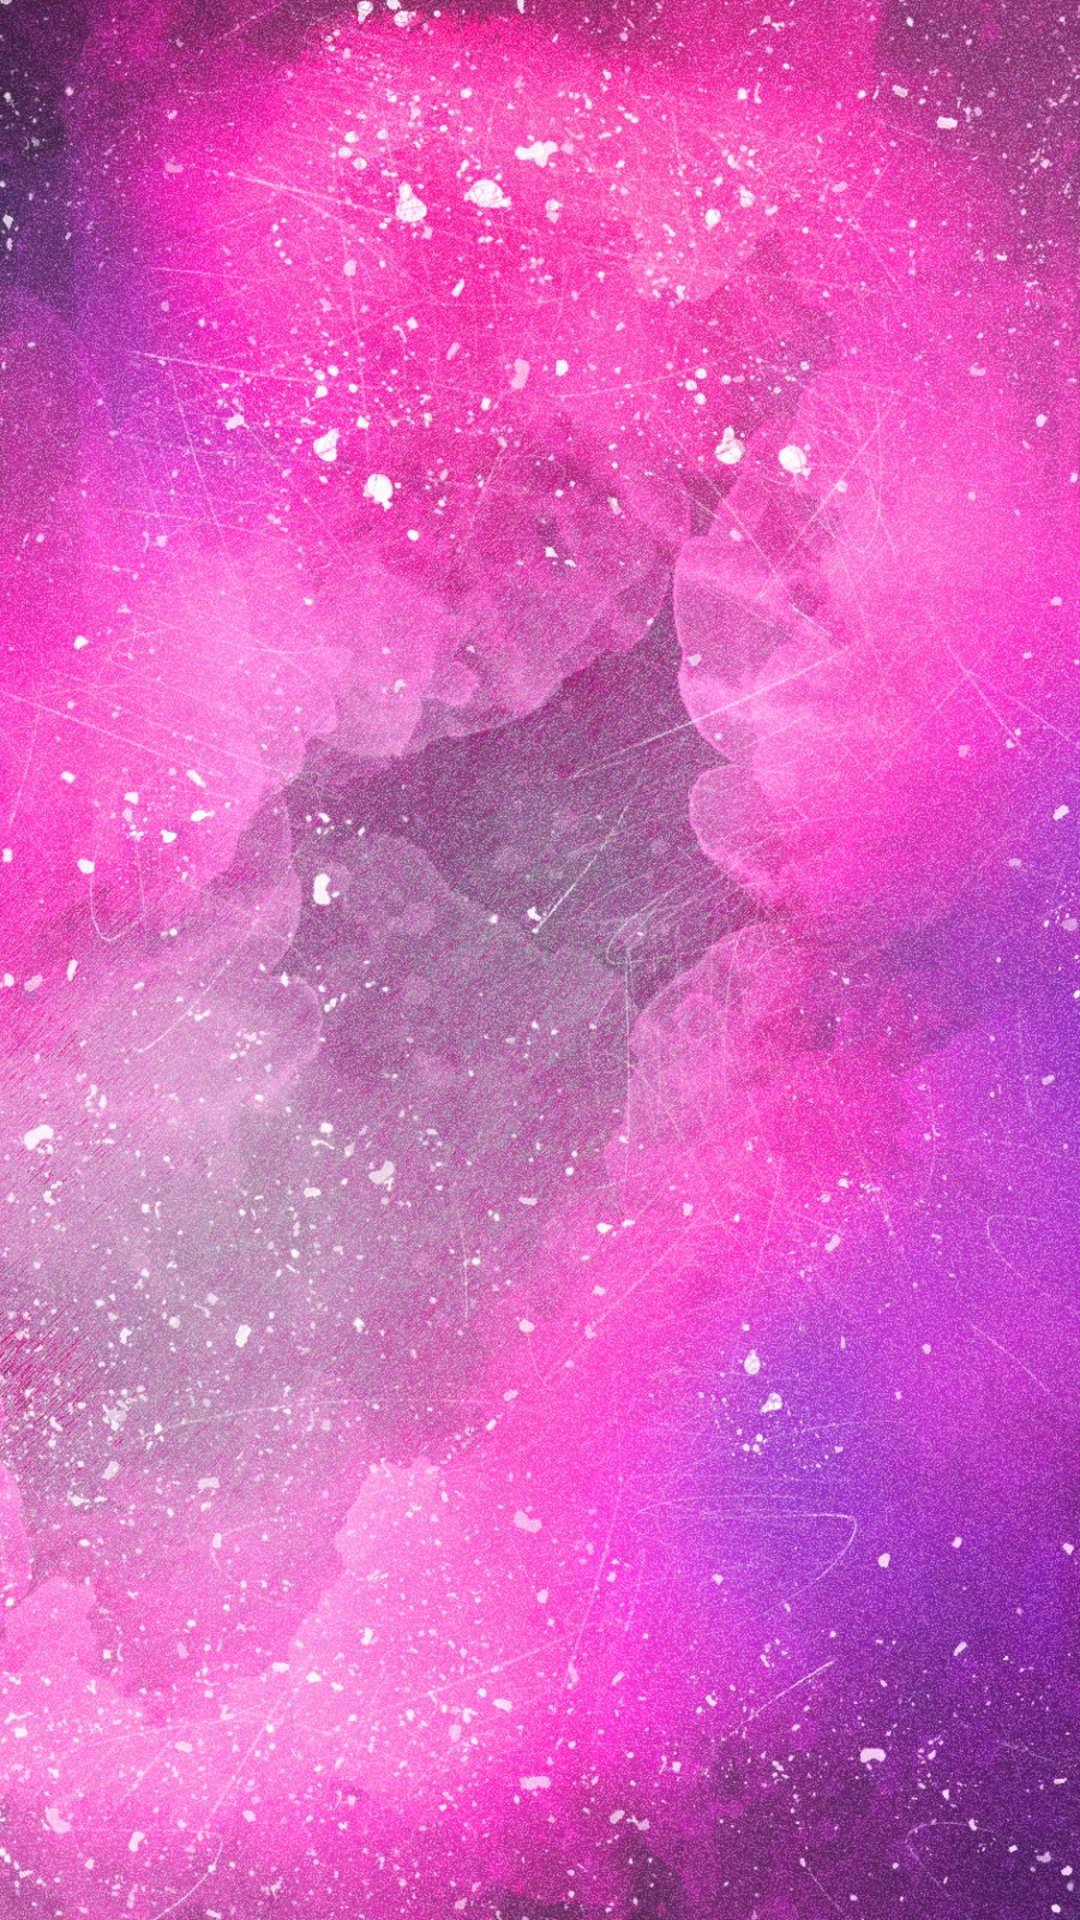 iphone wallpaper stains watercolor pink 3Wallpapers : notre sélection de fonds décran du 06/09/2017